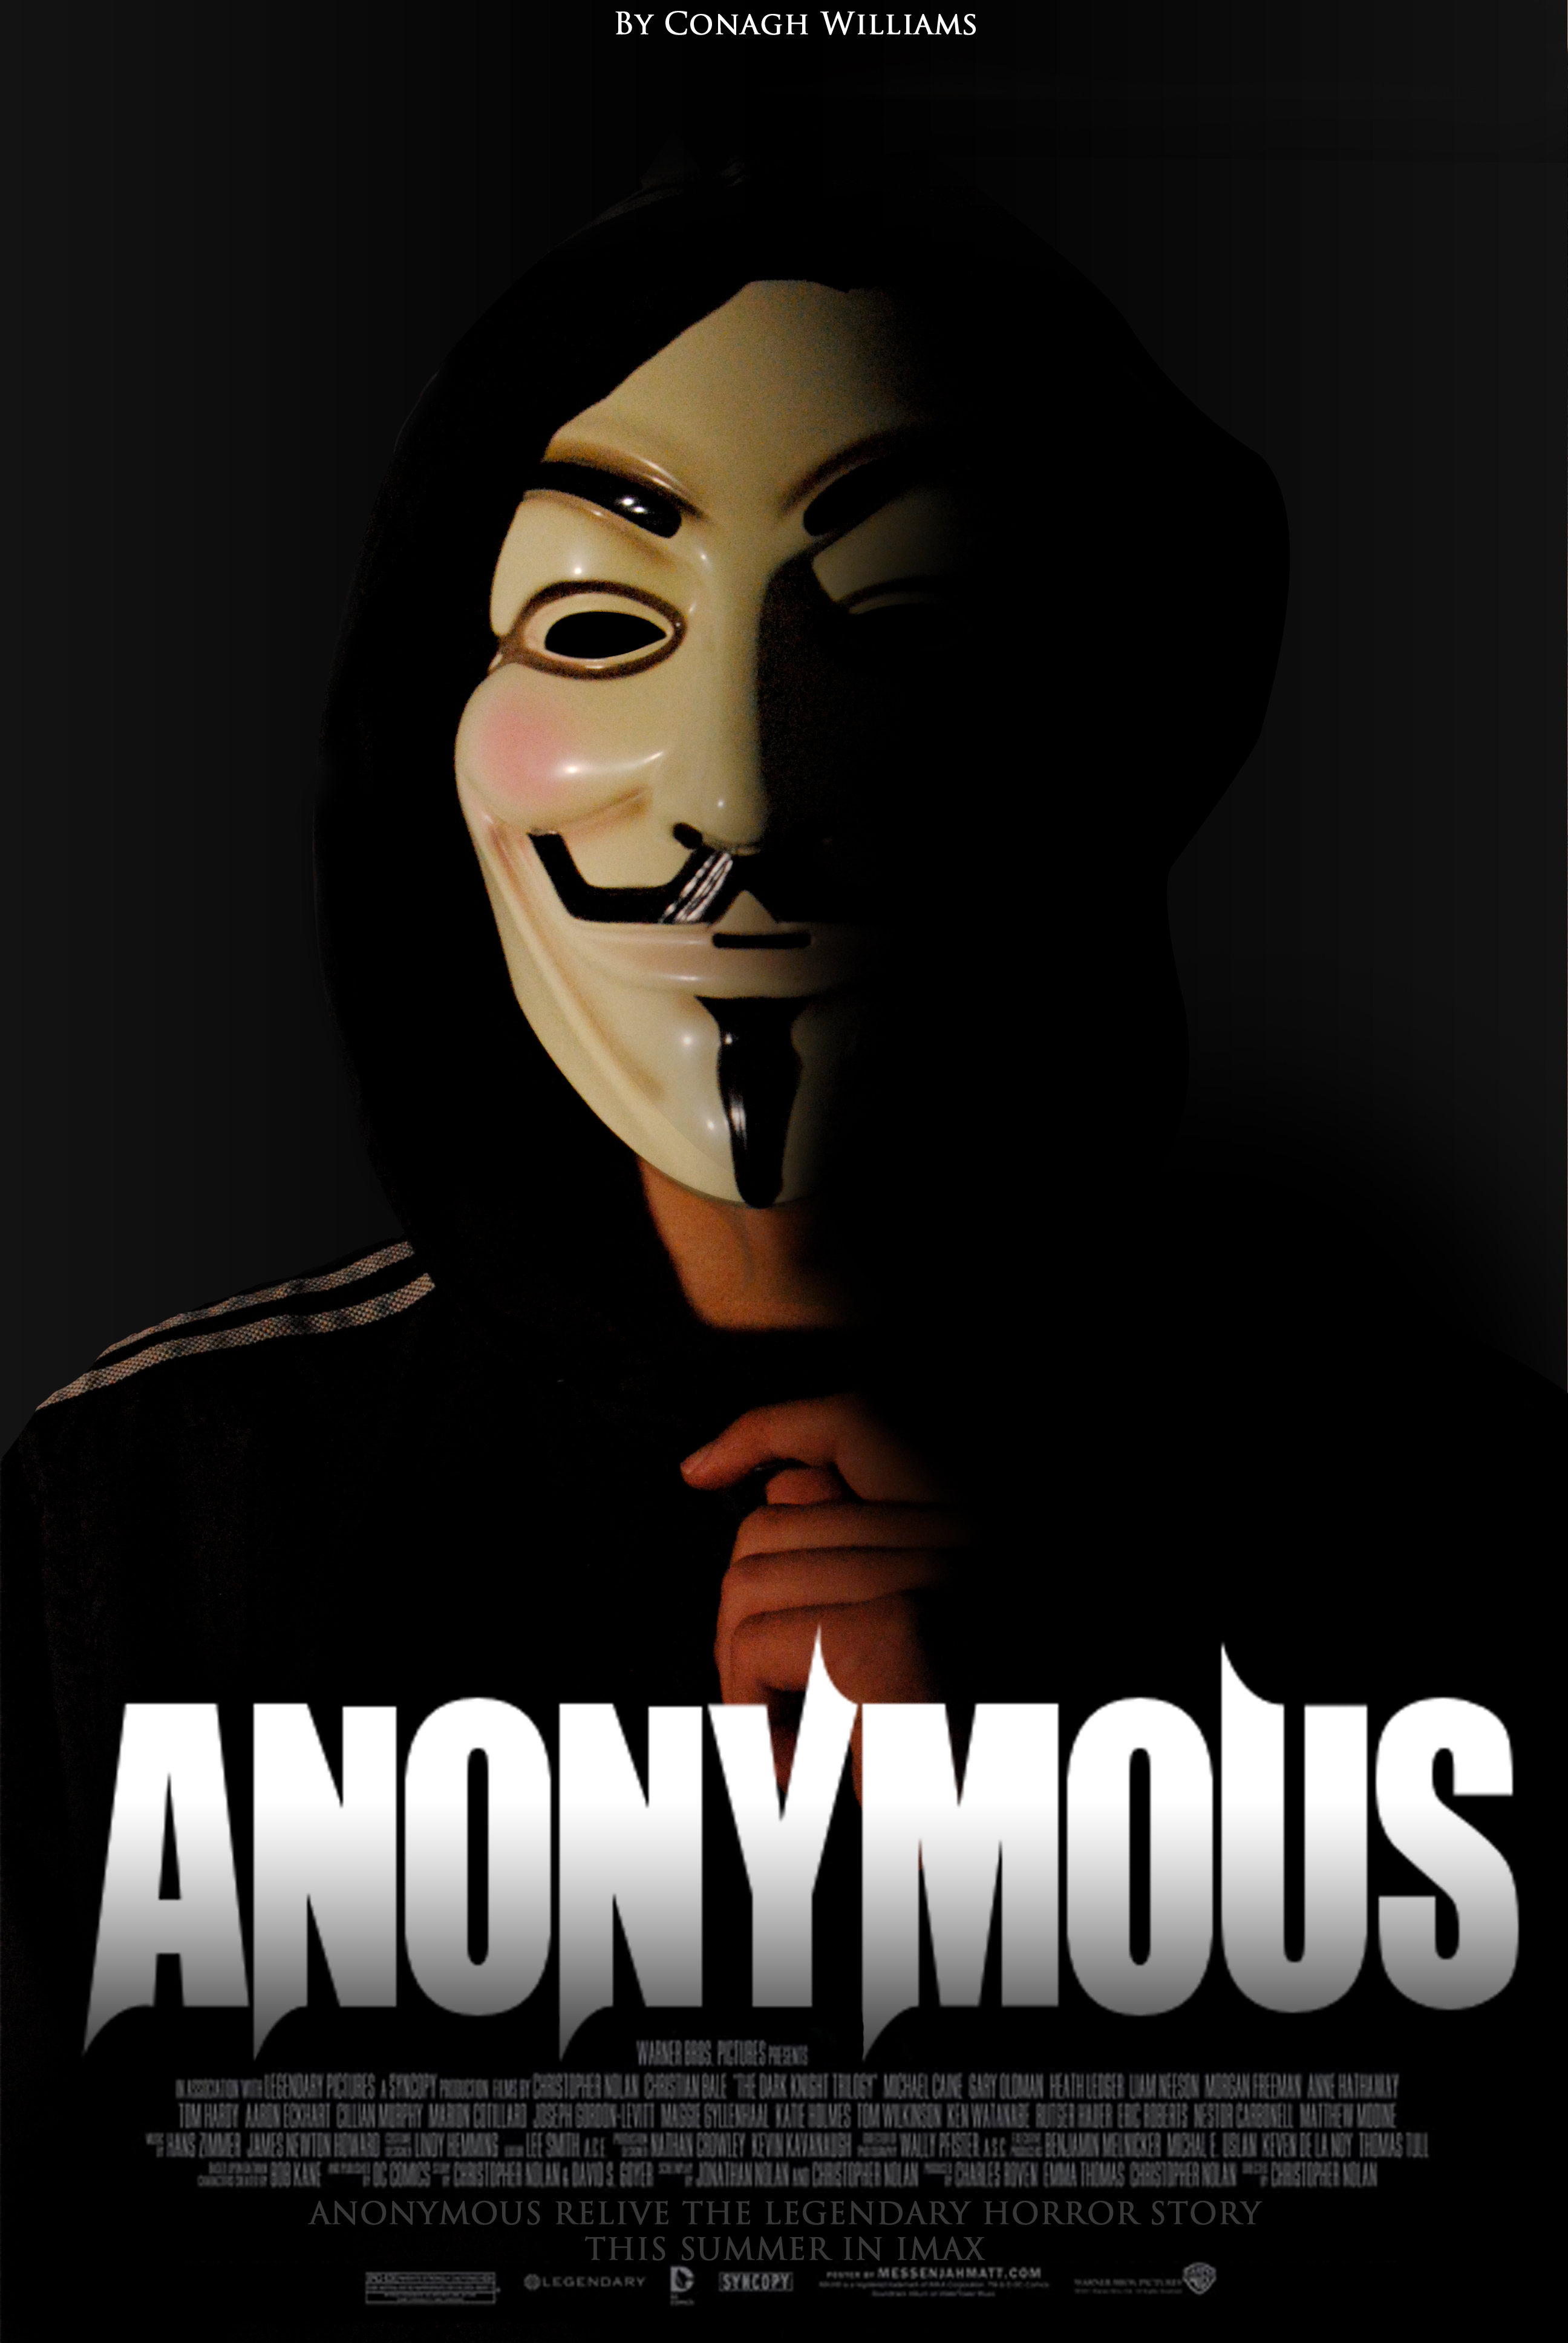 Anonymous Movie Poster by ConaghSubstance on DeviantArt